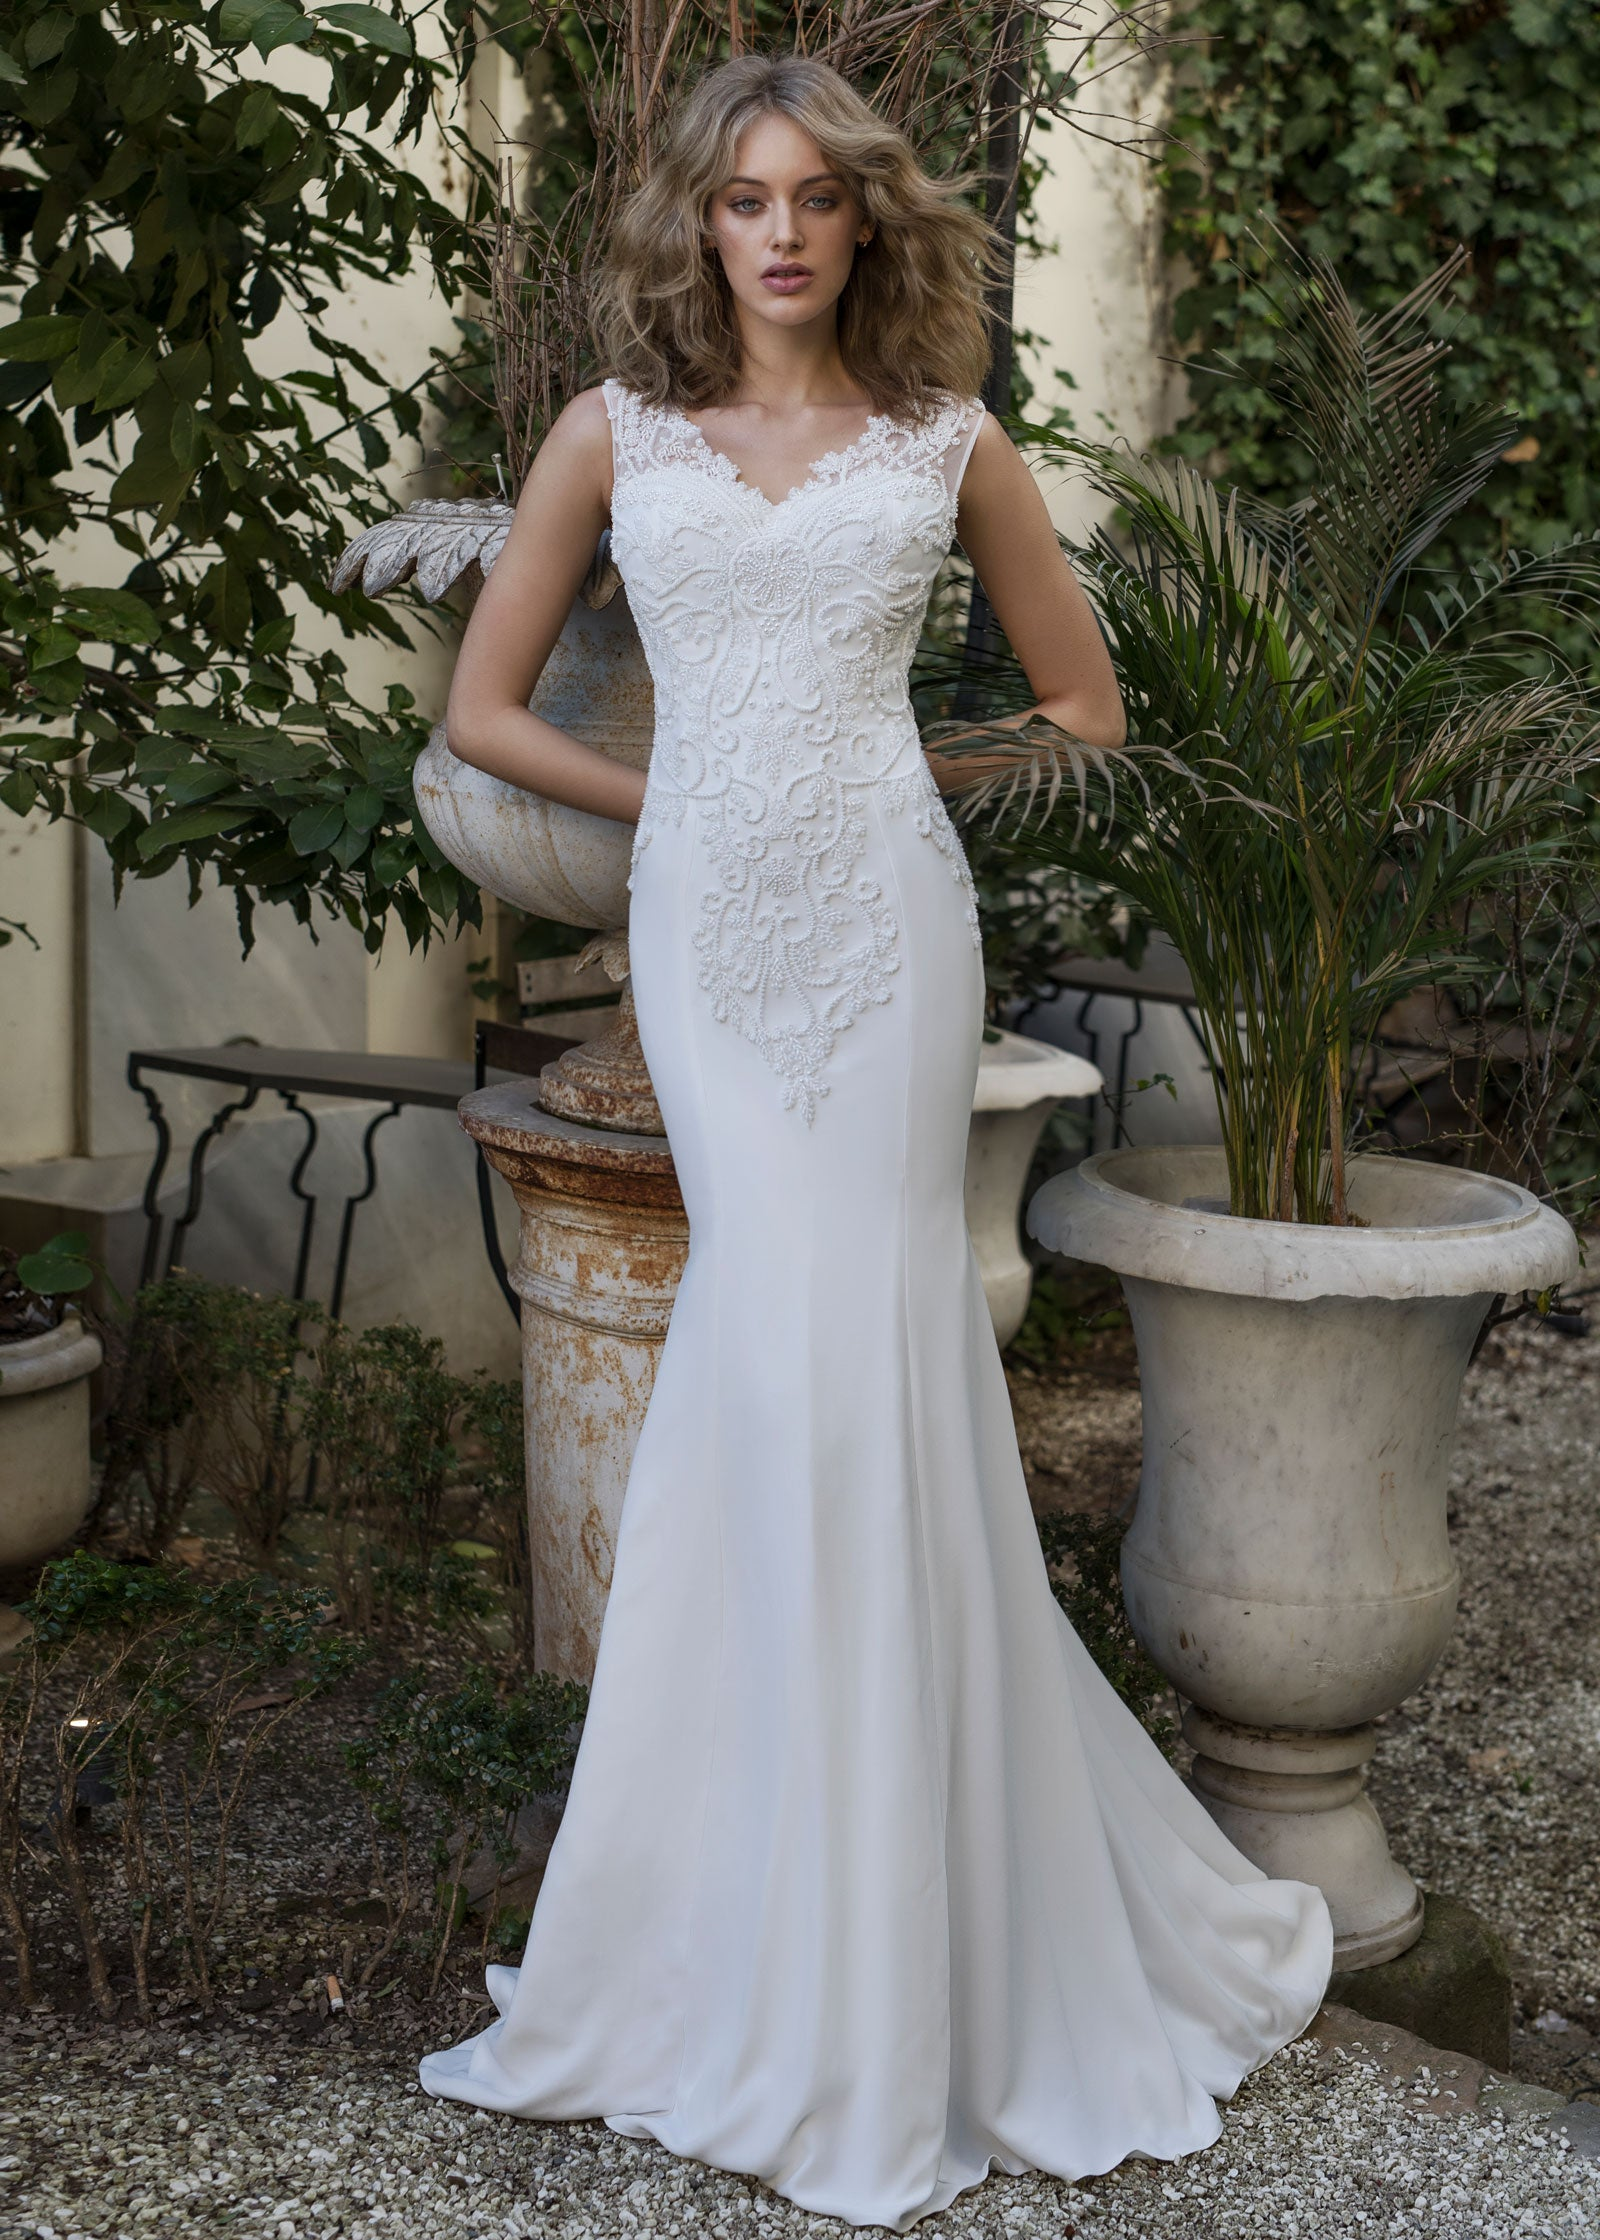 AFWHarmony wedding dress